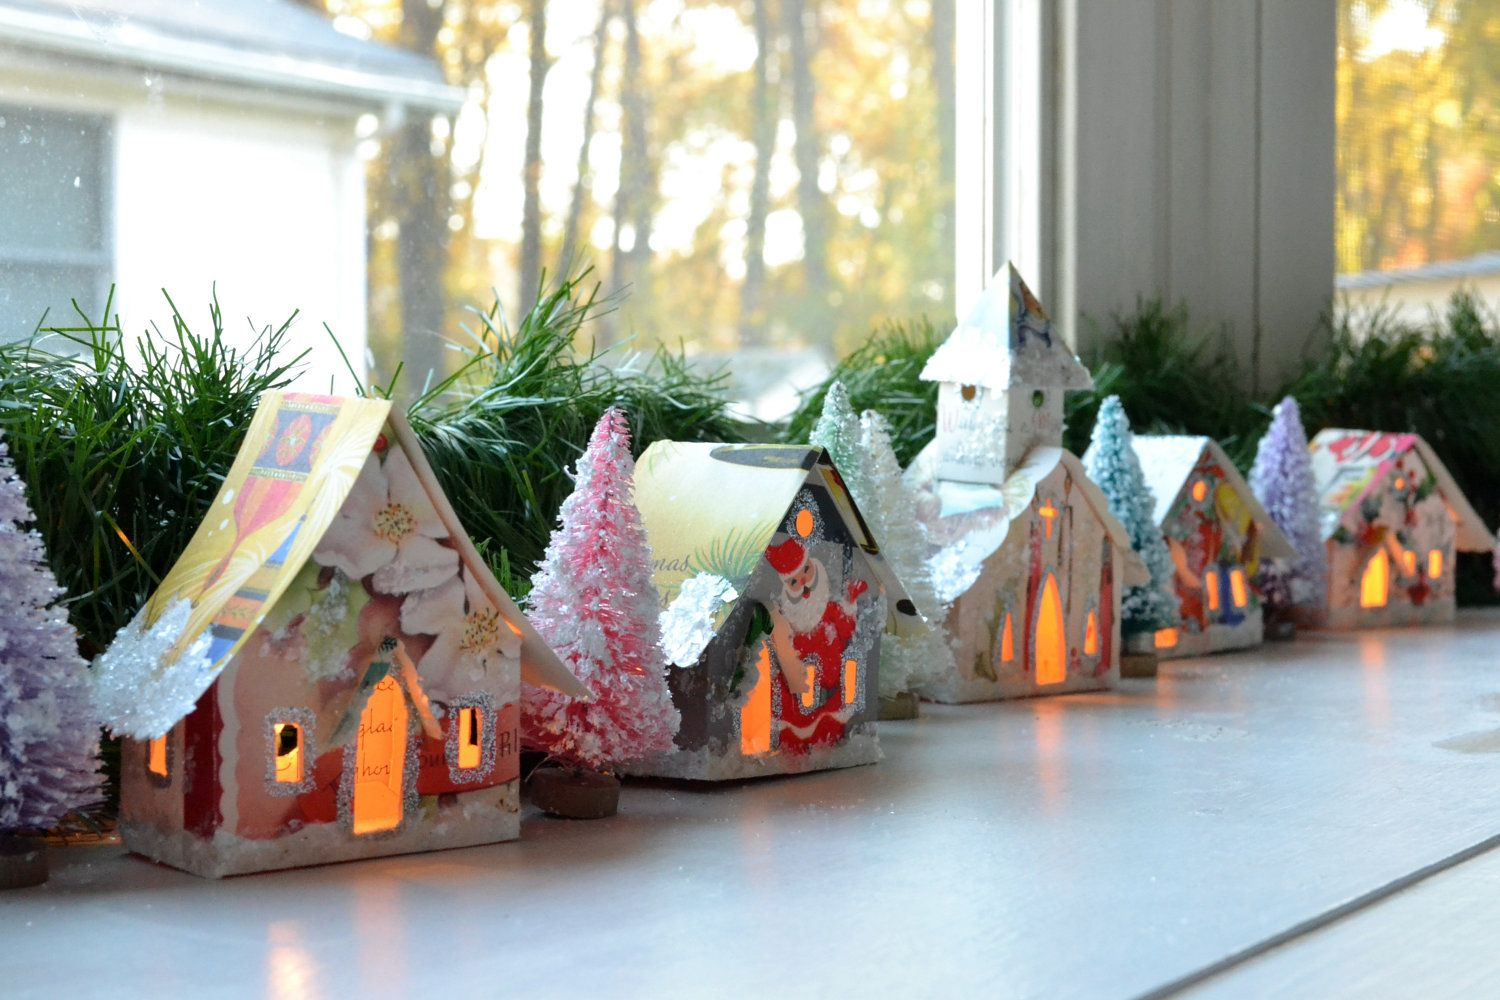 Sweet Little Putz Glitter Houses Church Village House Ornaments That Light Up Handmade From Vintage Christmas Cards Unique Decoration In 2020 House Ornaments Glitter Houses Christmas Card Crafts